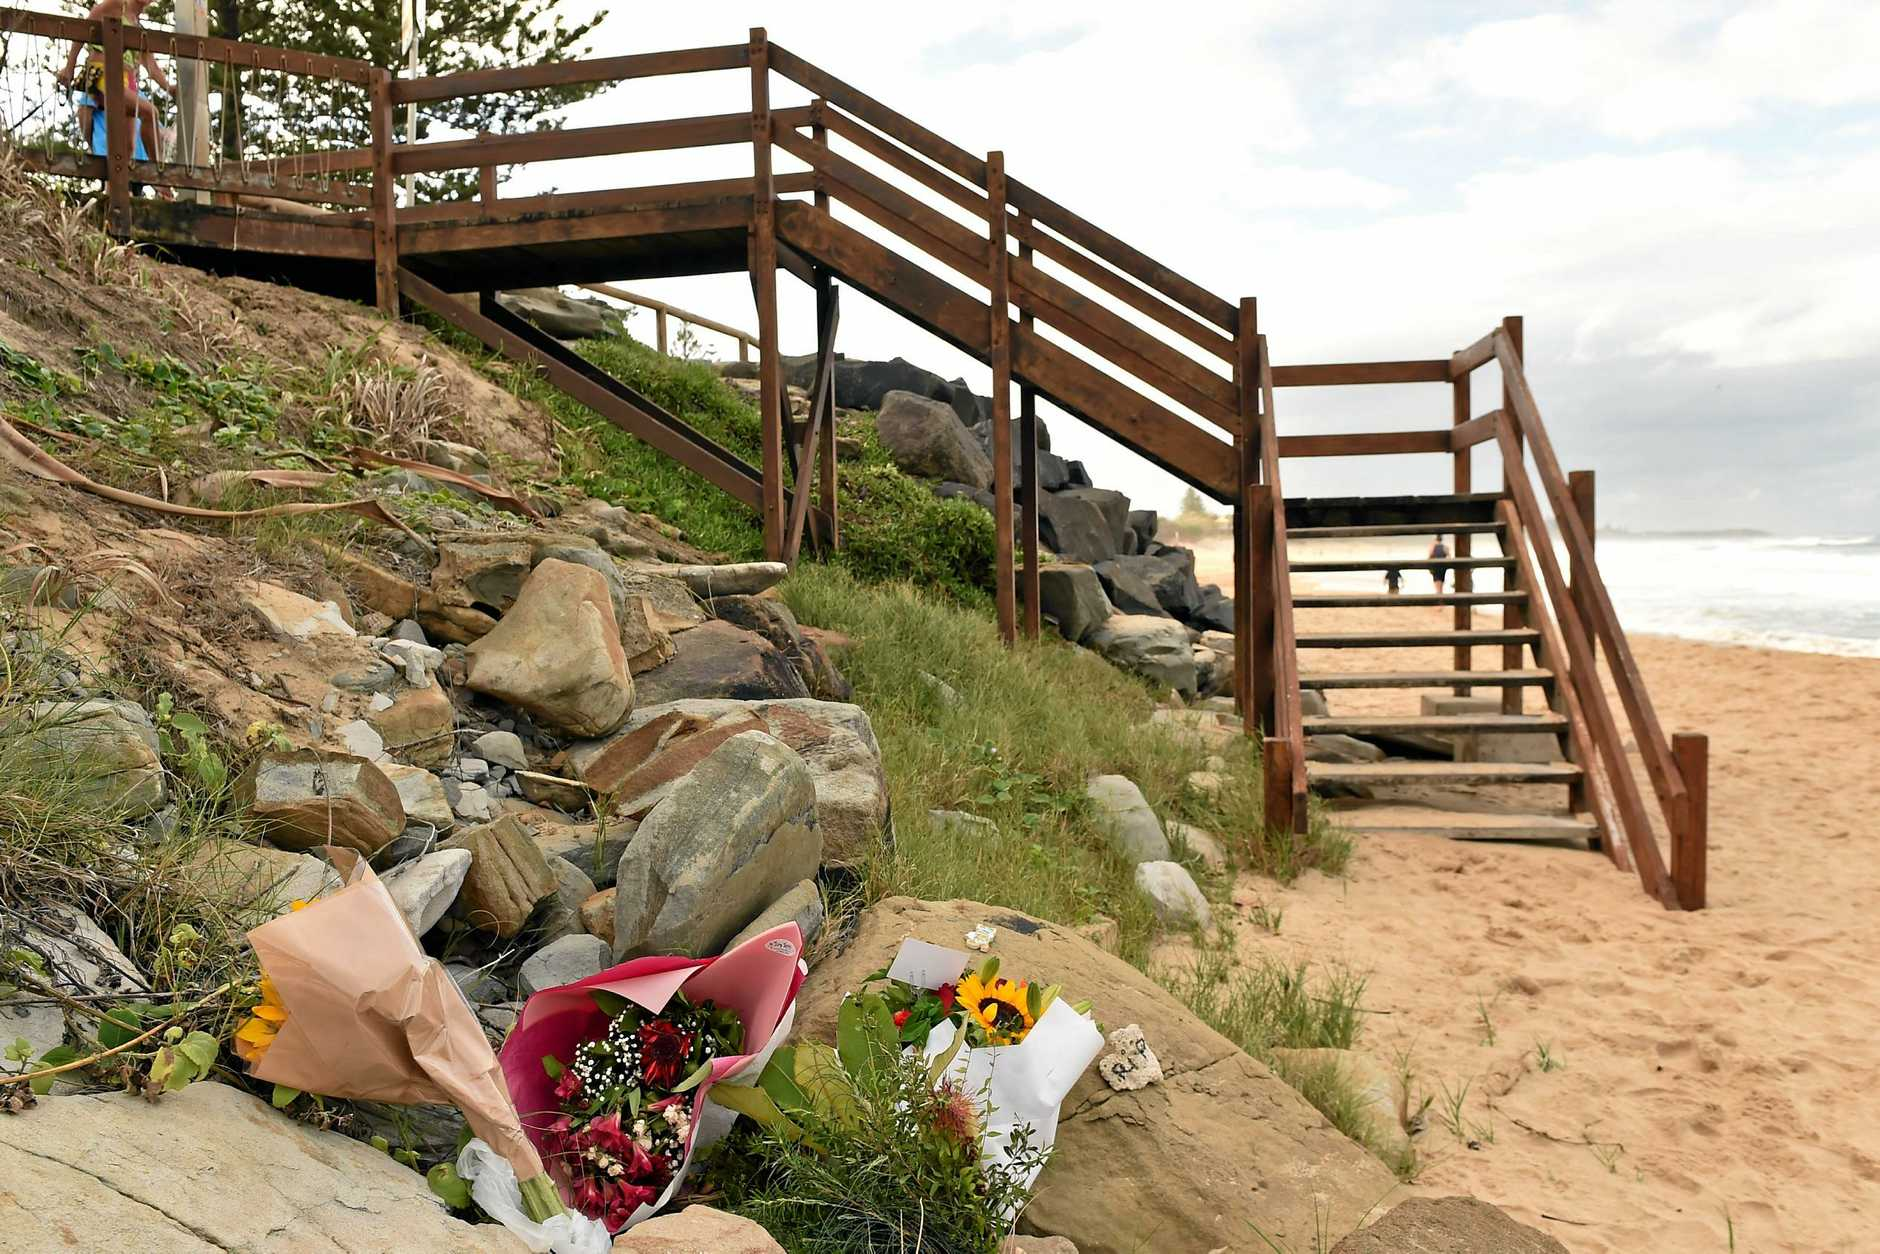 The Dicky Beach surfing community is reeling after the body of a young woman washed ashore. Flowers have been left at the botom of the staircase in her remembrance.